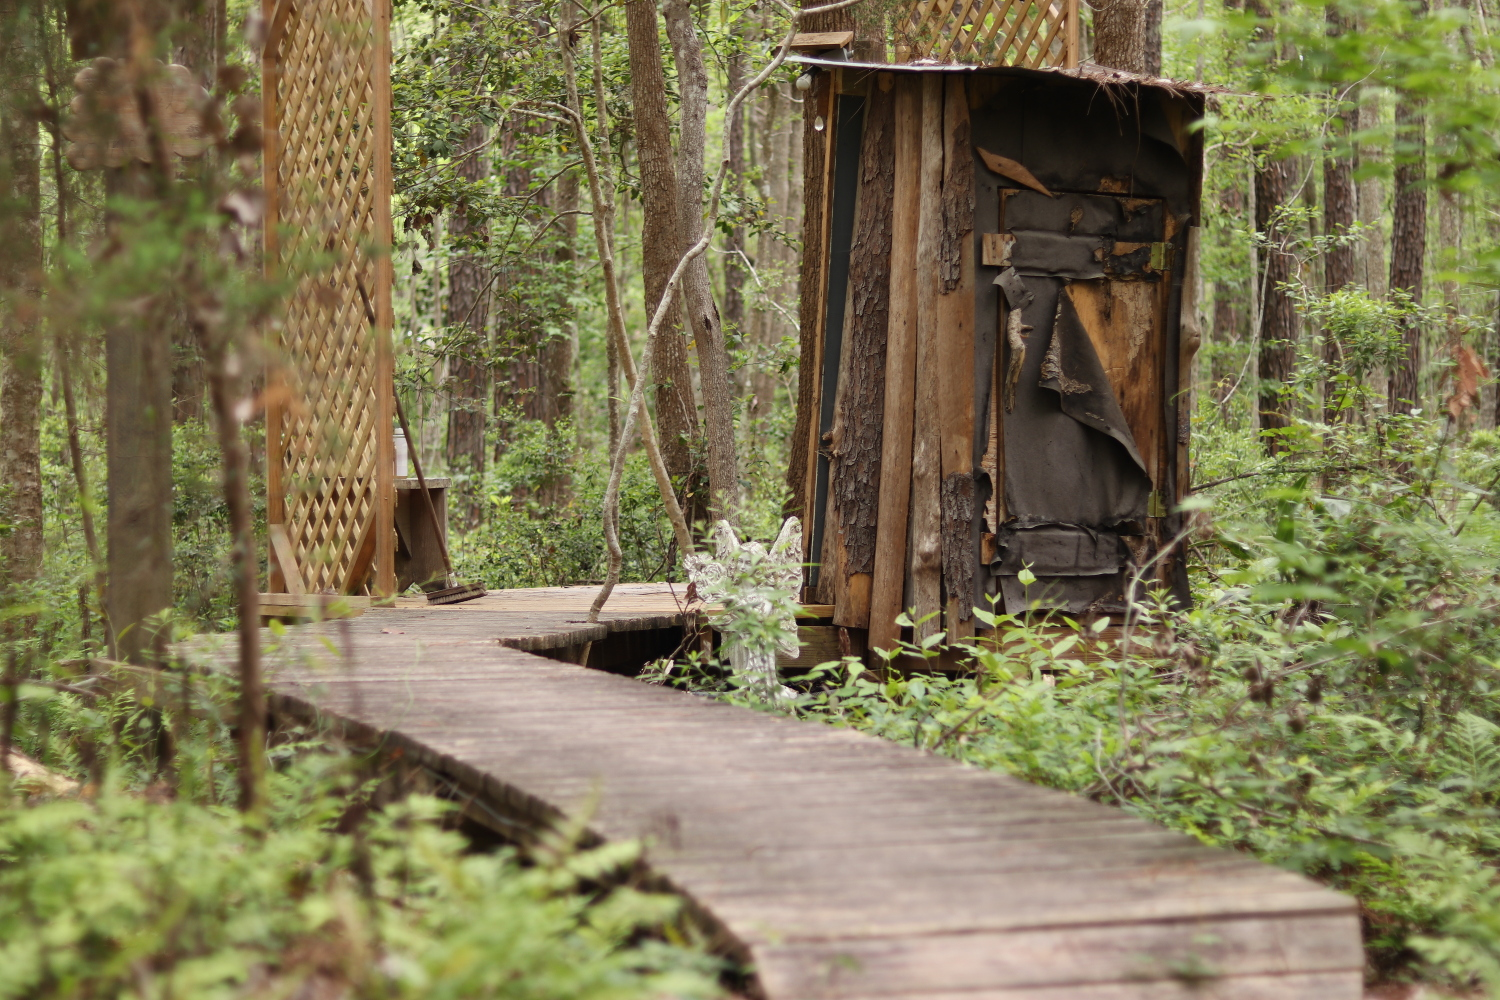 A 'Secluded' shower in the woods